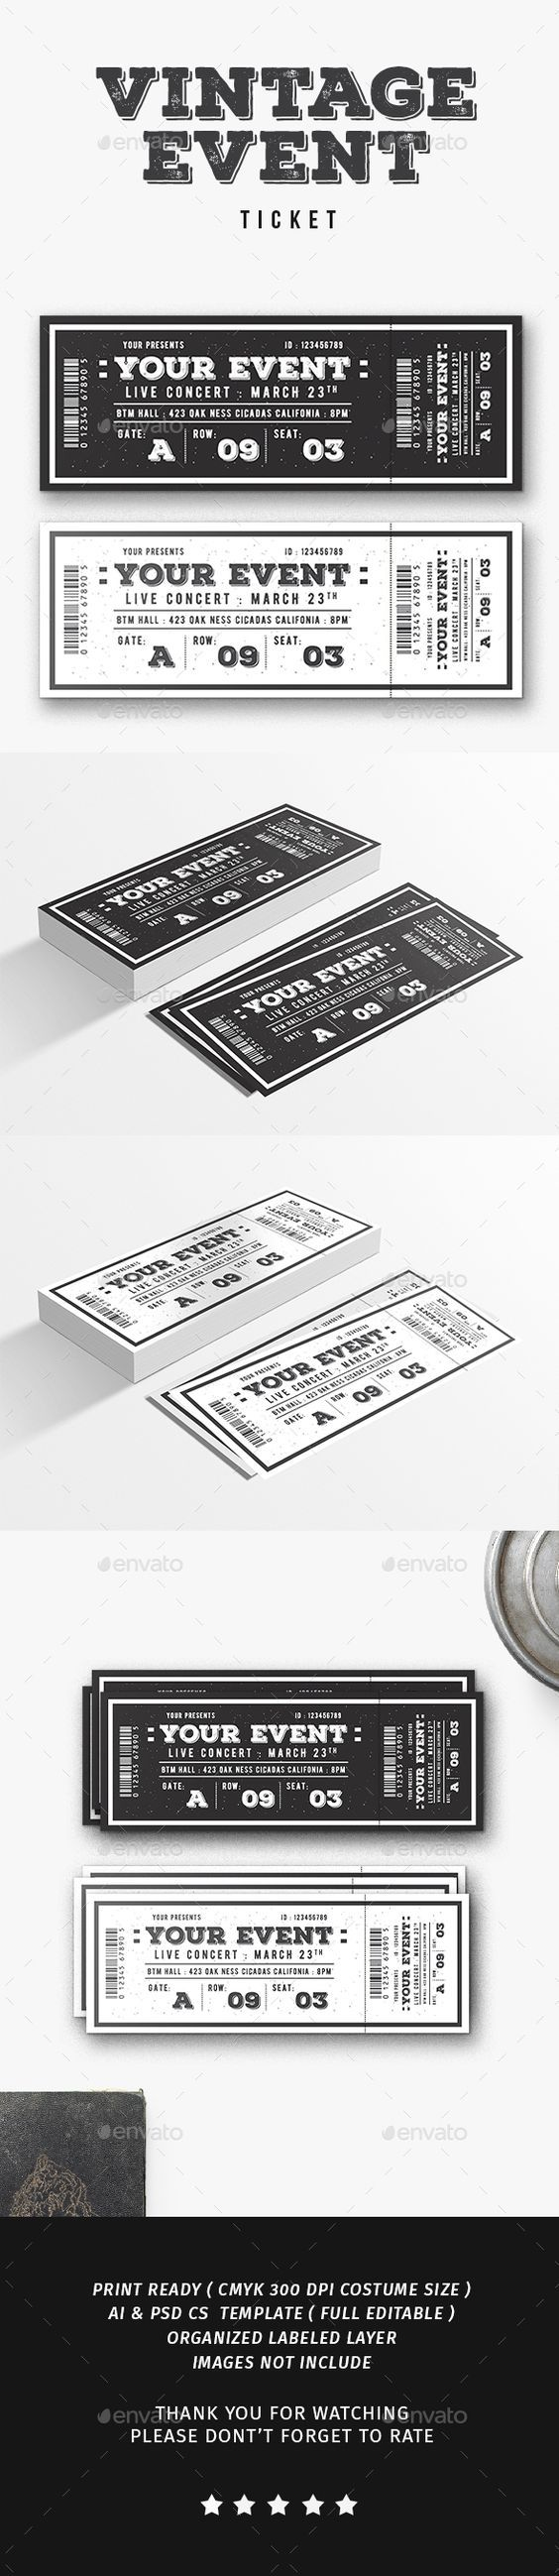 Concert Ticket Template Free Download Adorable Vintage Event Ticket  Event Ticket